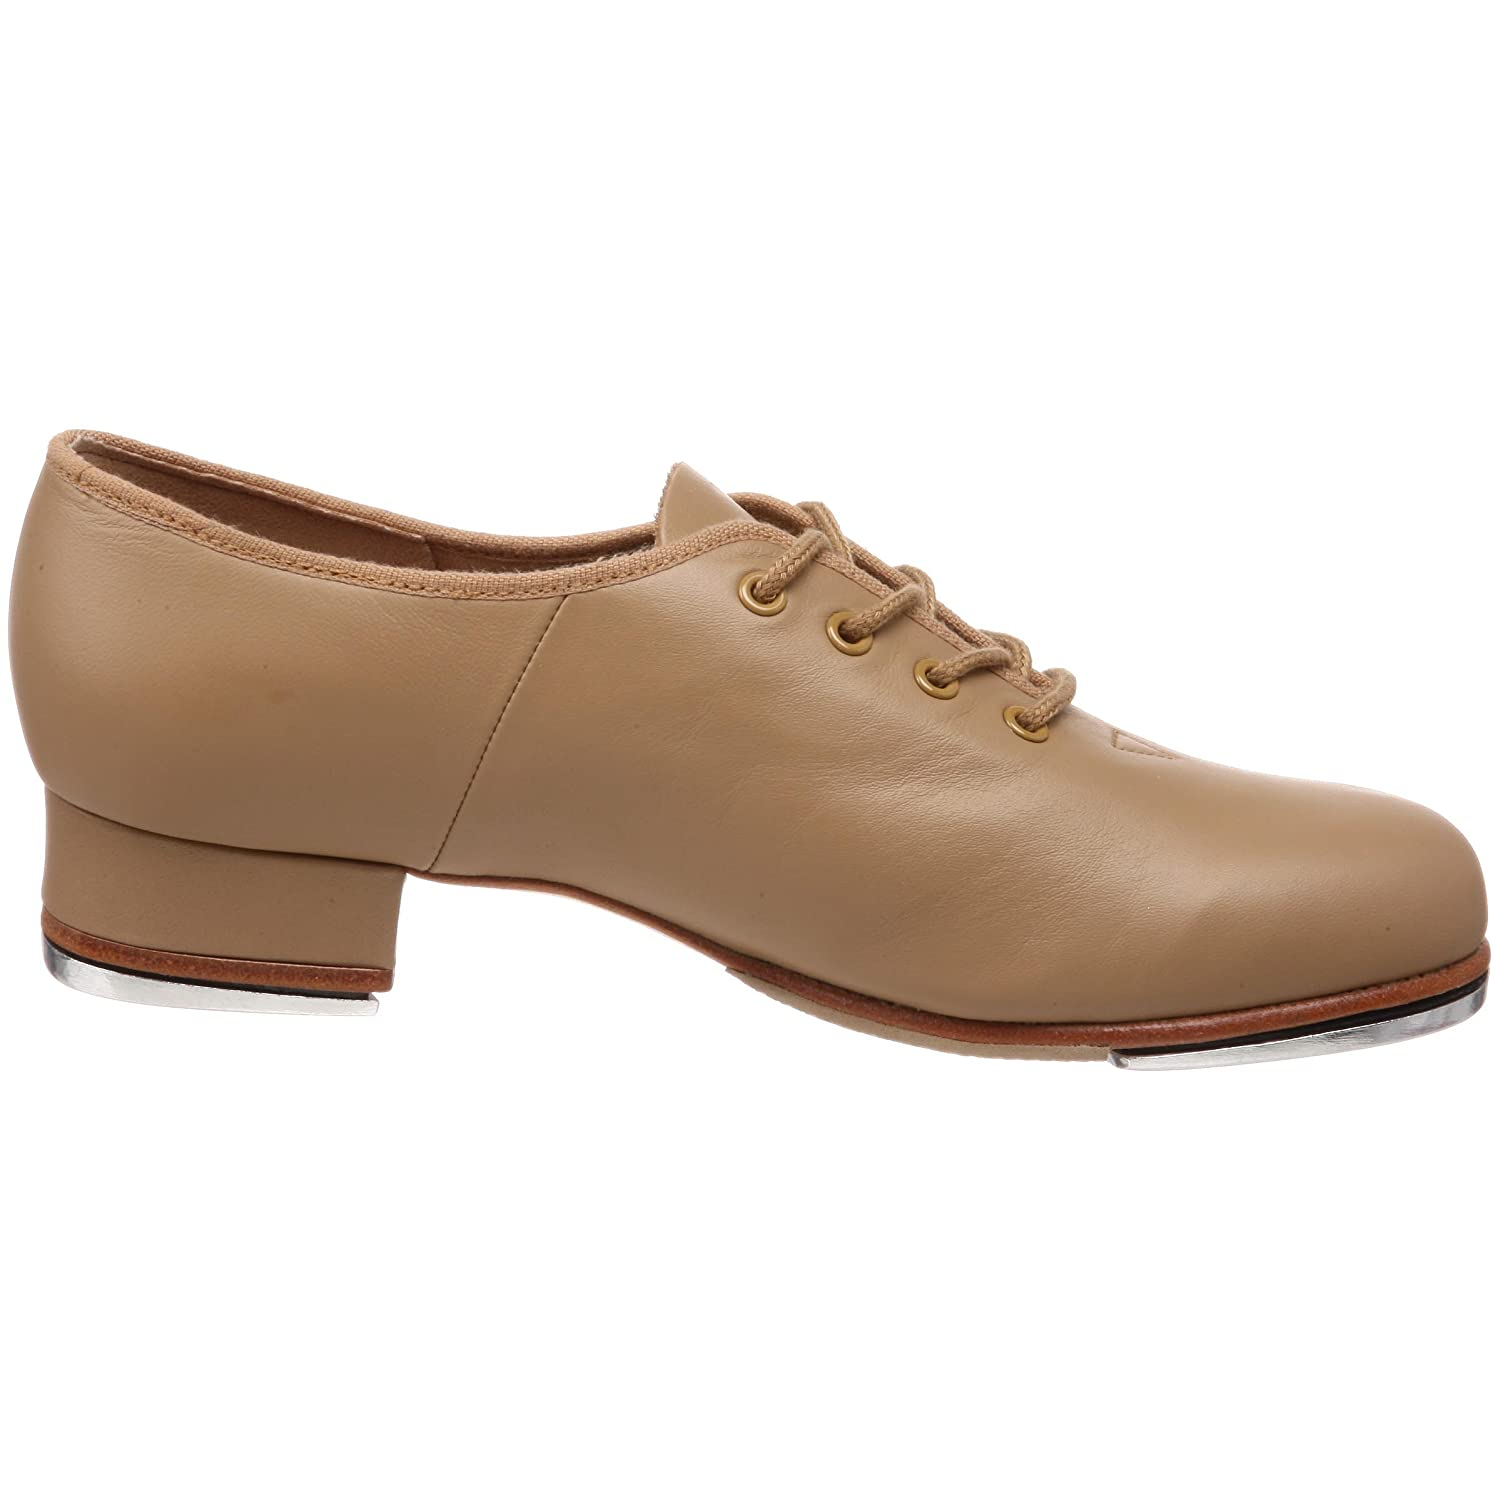 Bloch Women's Jazz Tap Shoe B0041HZ1B6 8 X(Medium) US|Tan